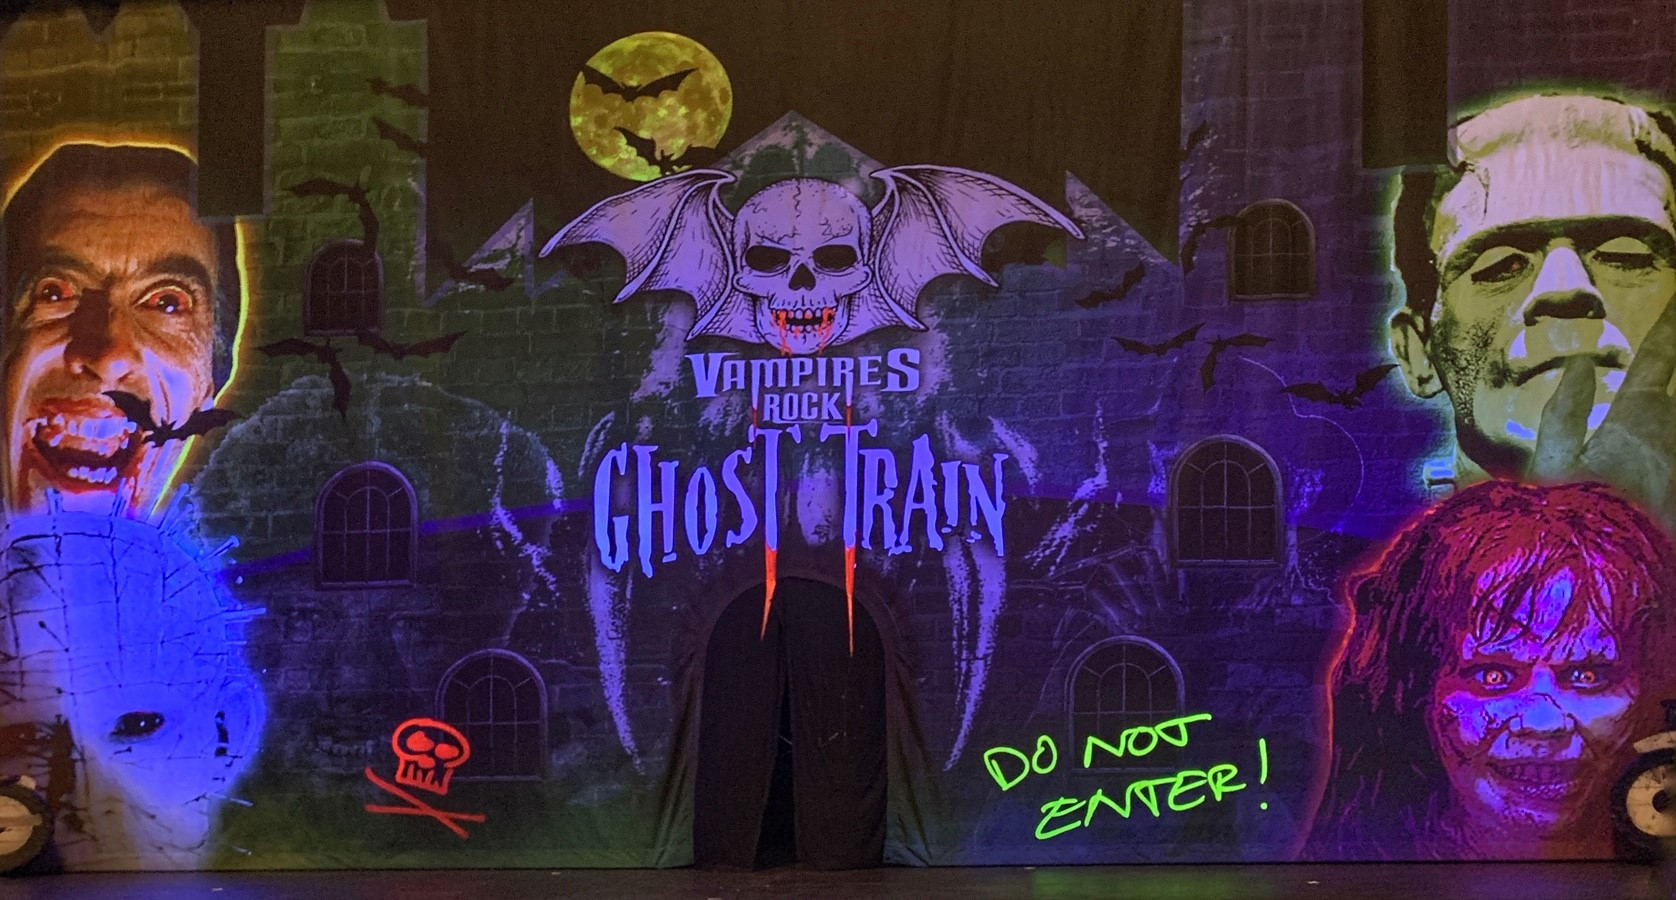 Vampires Rock Ghost Train stage curtain